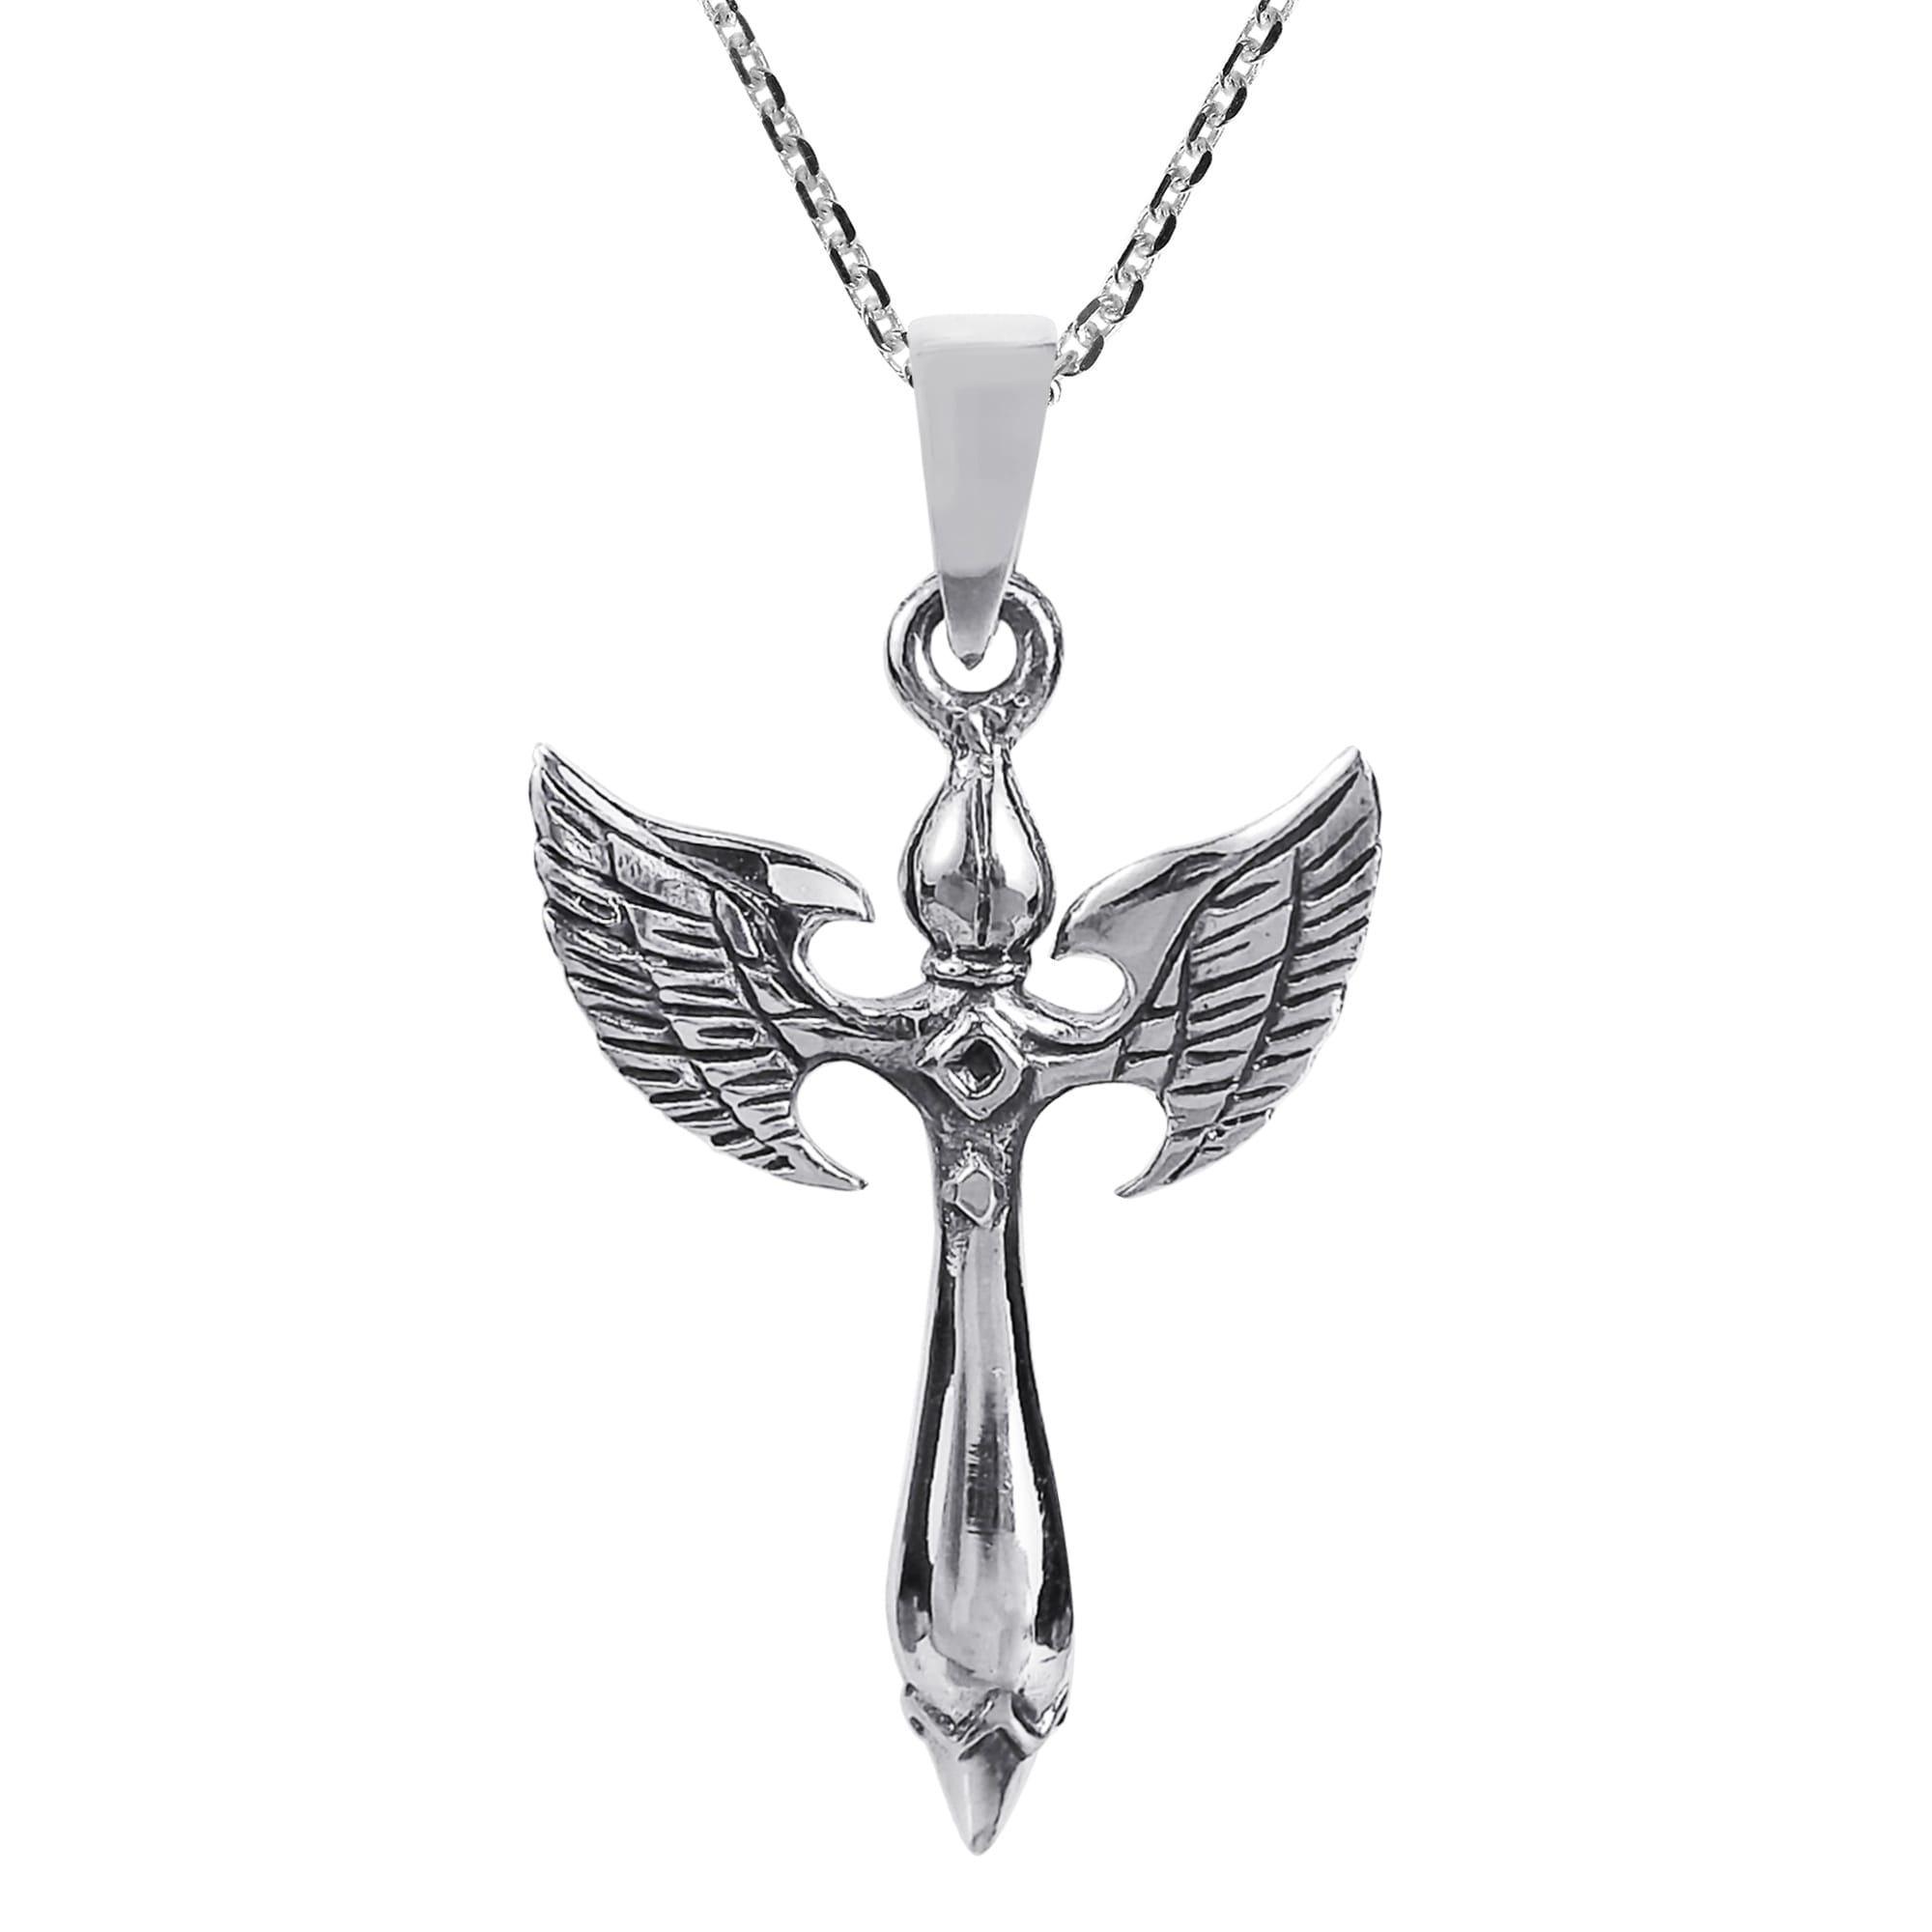 eng print winged necklace accessories ladies necklaces set layout jewelry